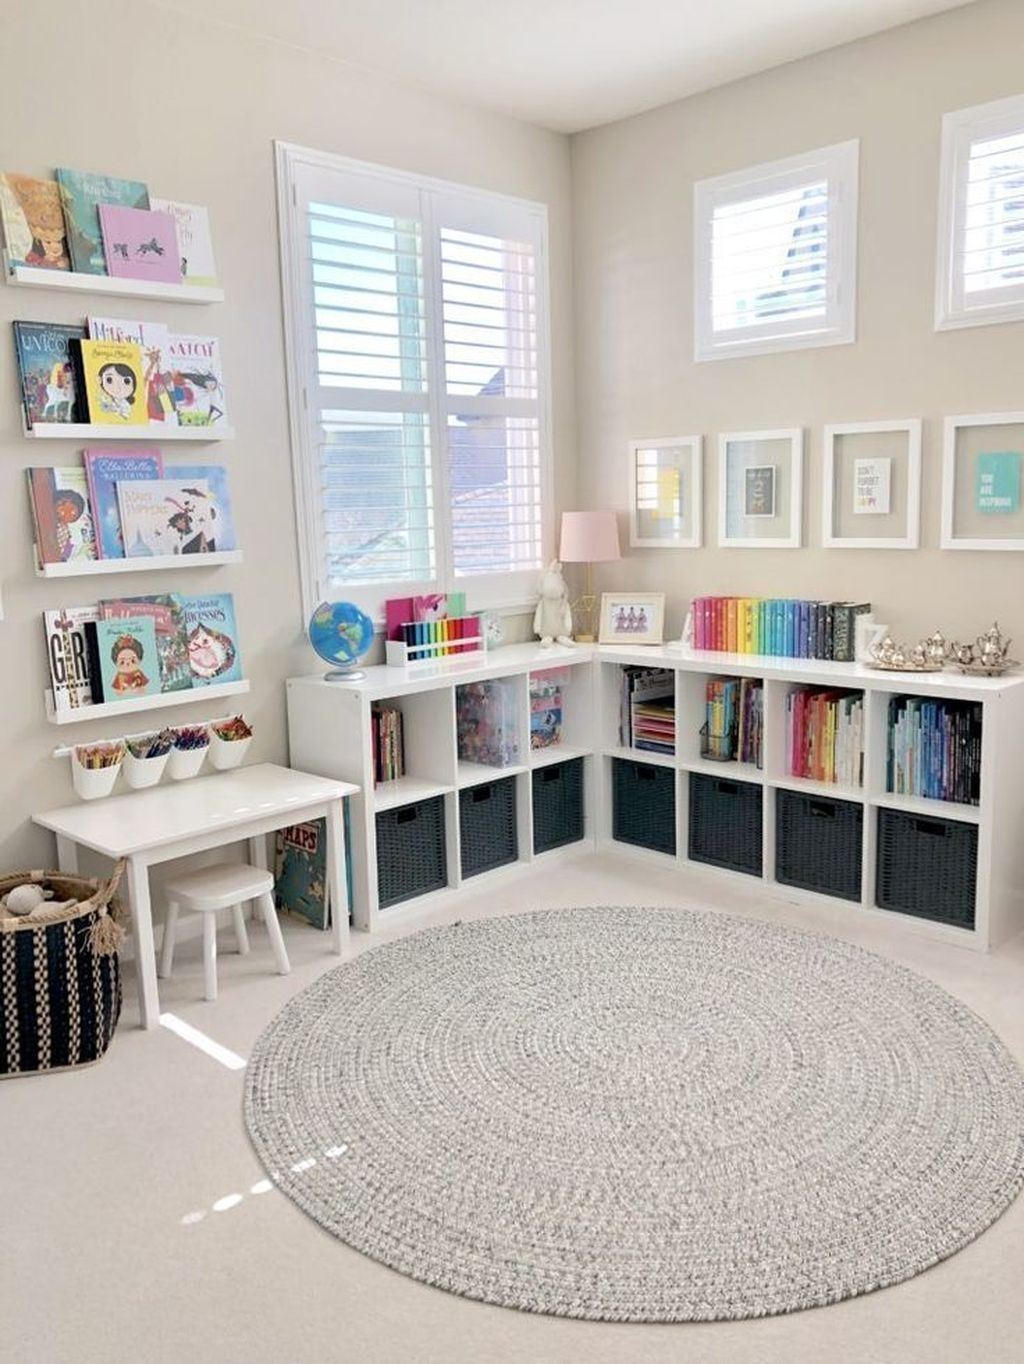 37 Enchanting Kids Play Room Design Ideas On A Budget